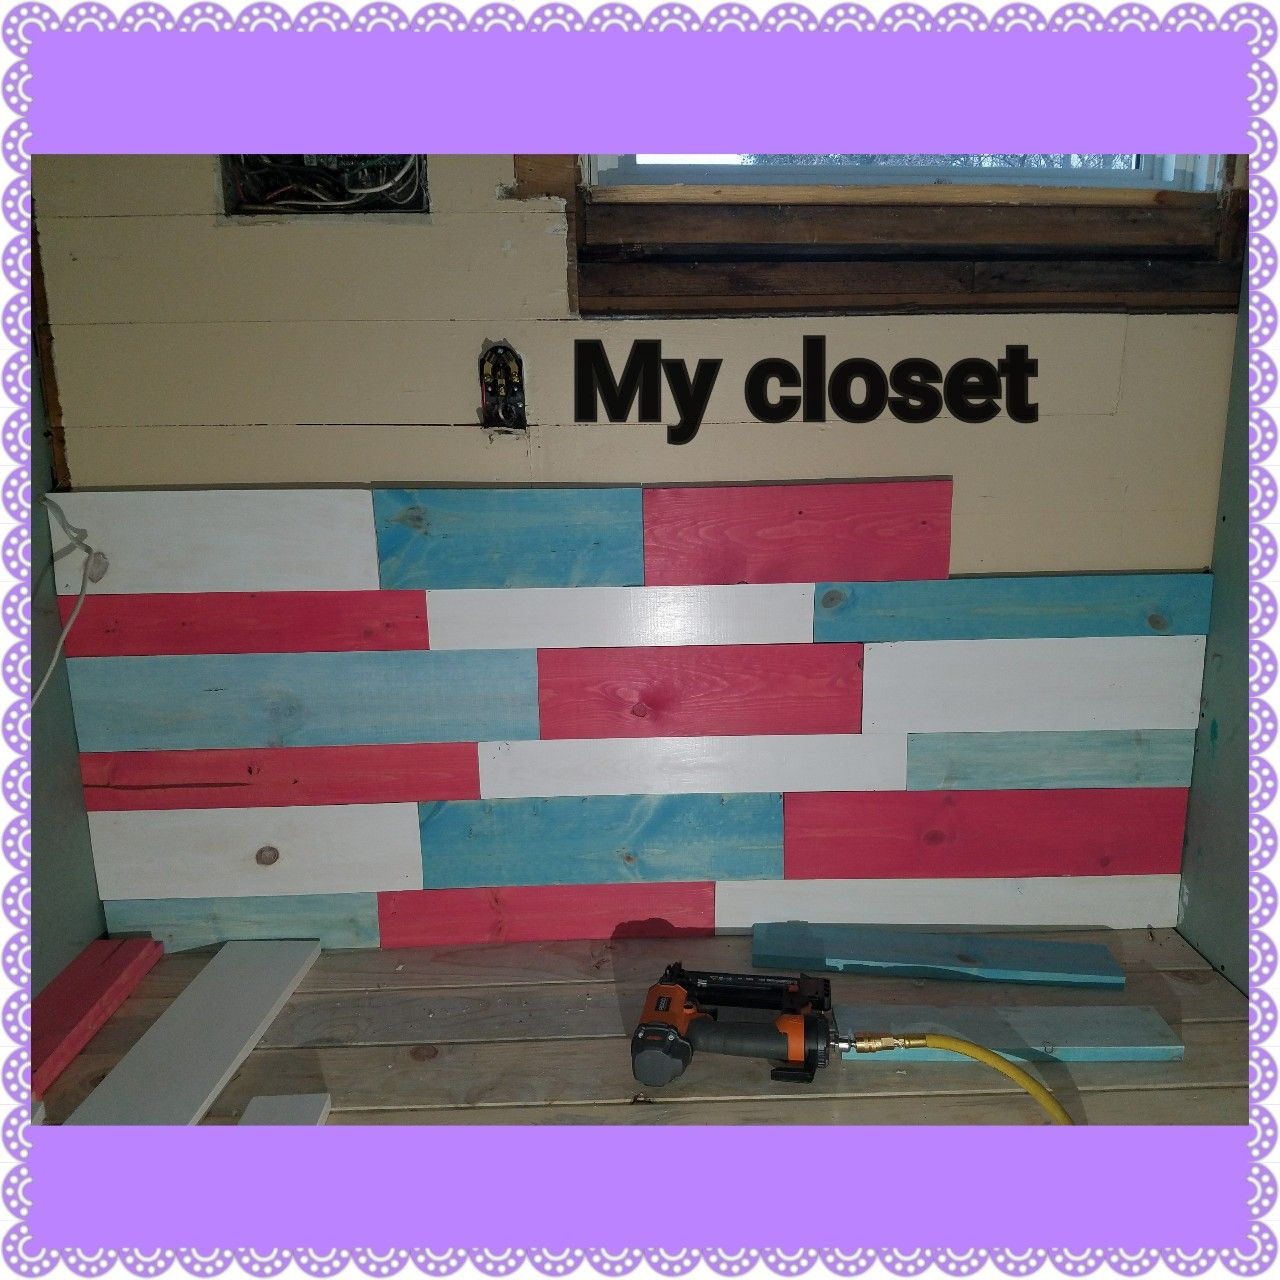 My closet, stained wood